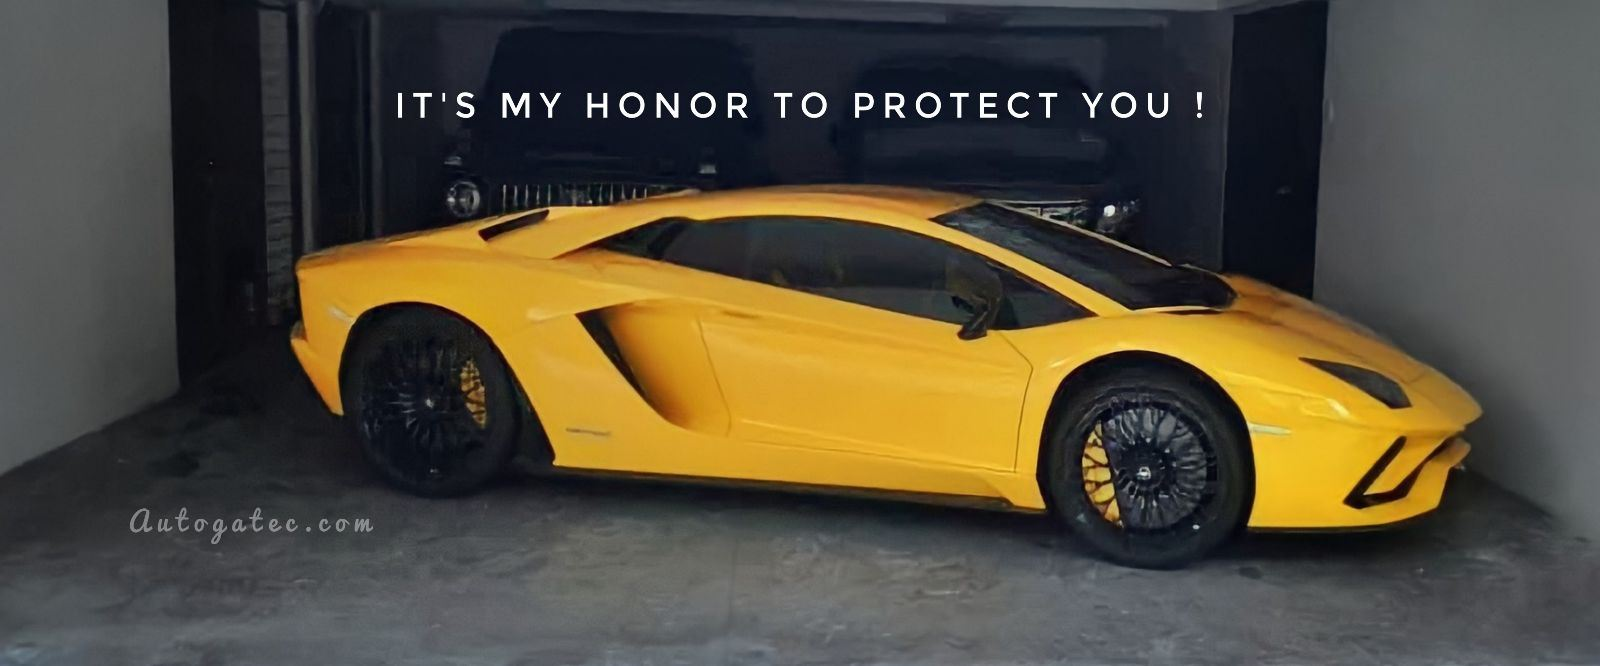 Protect You Car with Autogate